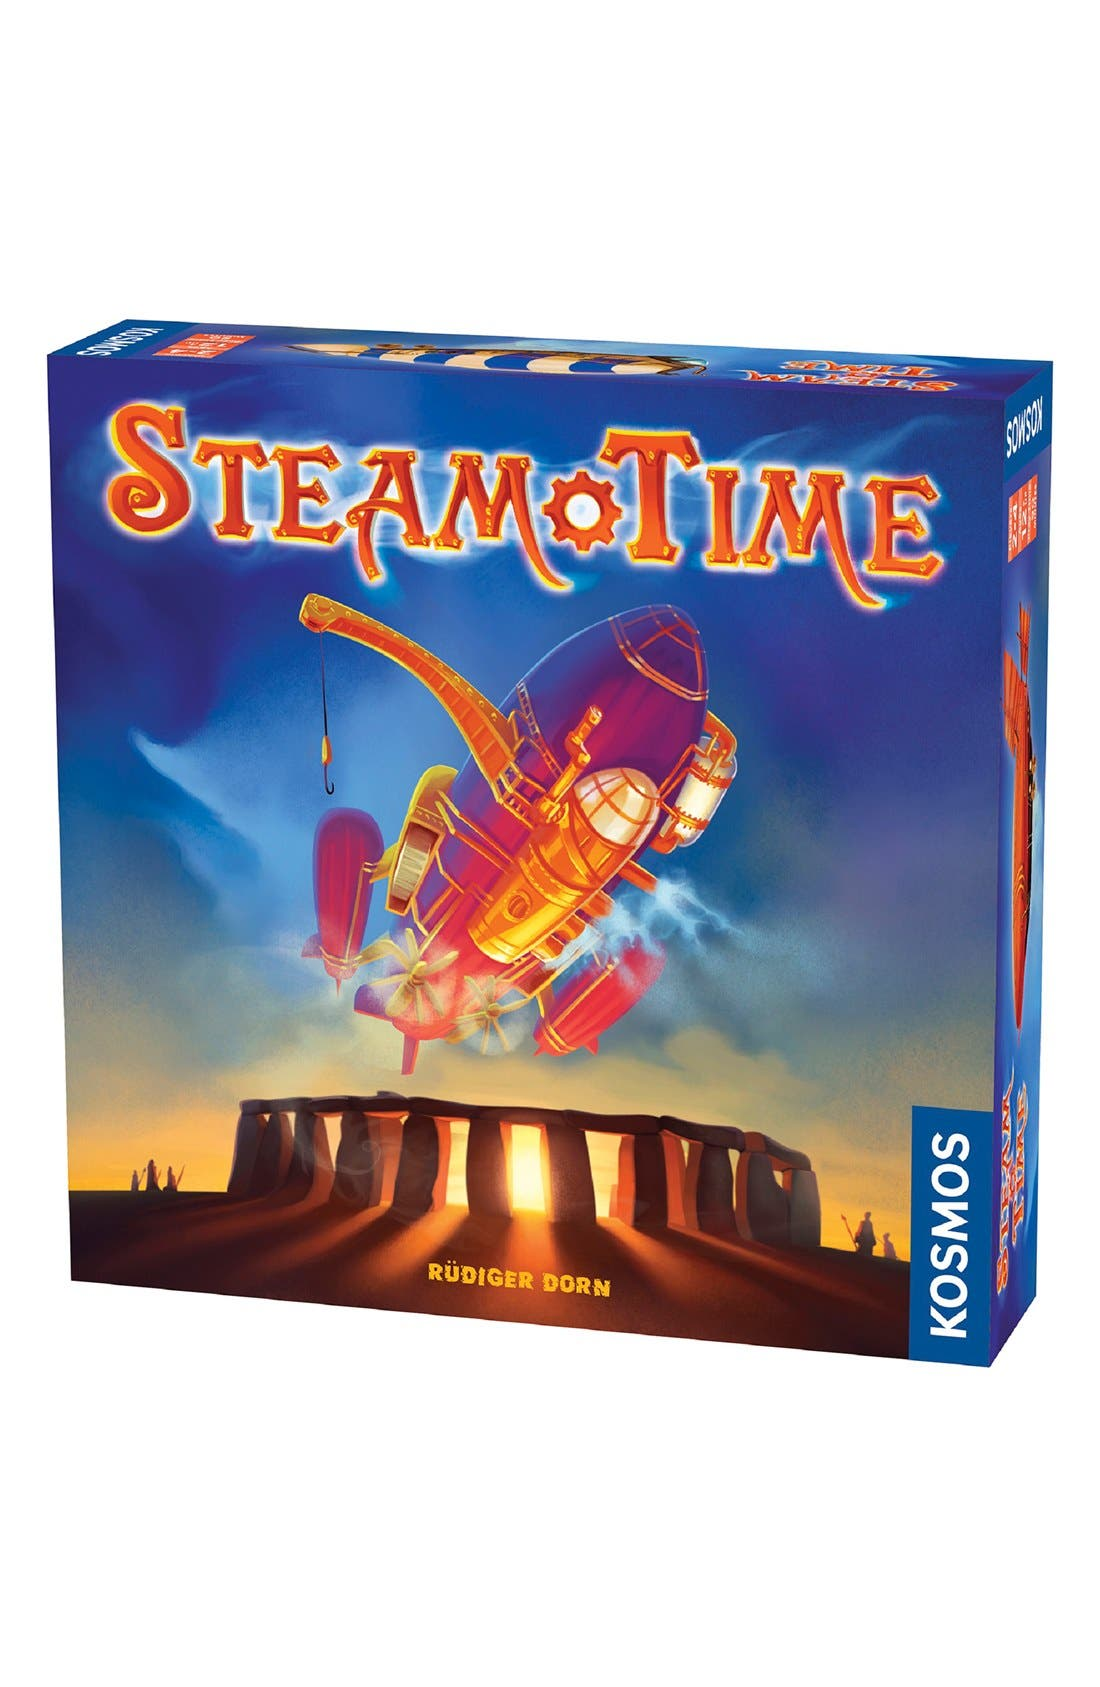 'Steam Time' Board Game,                             Main thumbnail 1, color,                             400